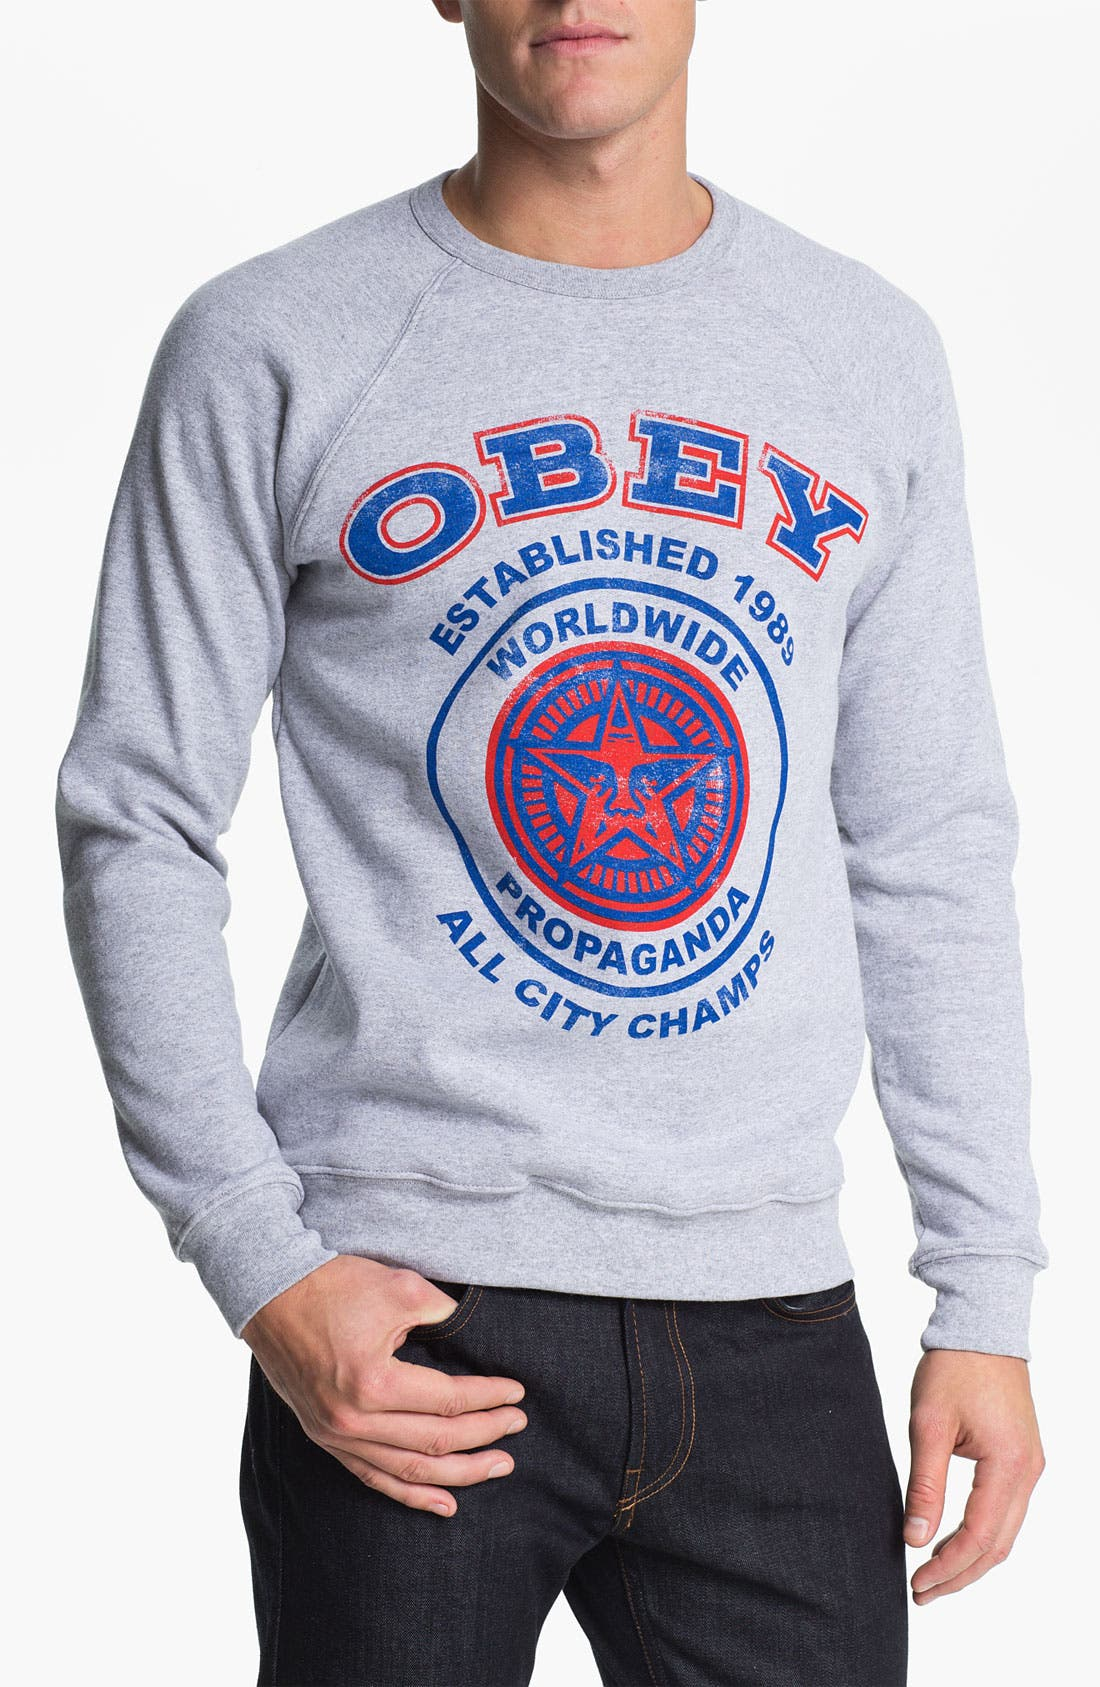 Alternate Image 1 Selected - Obey 'All City Champs' Graphic Crewneck Sweatshirt